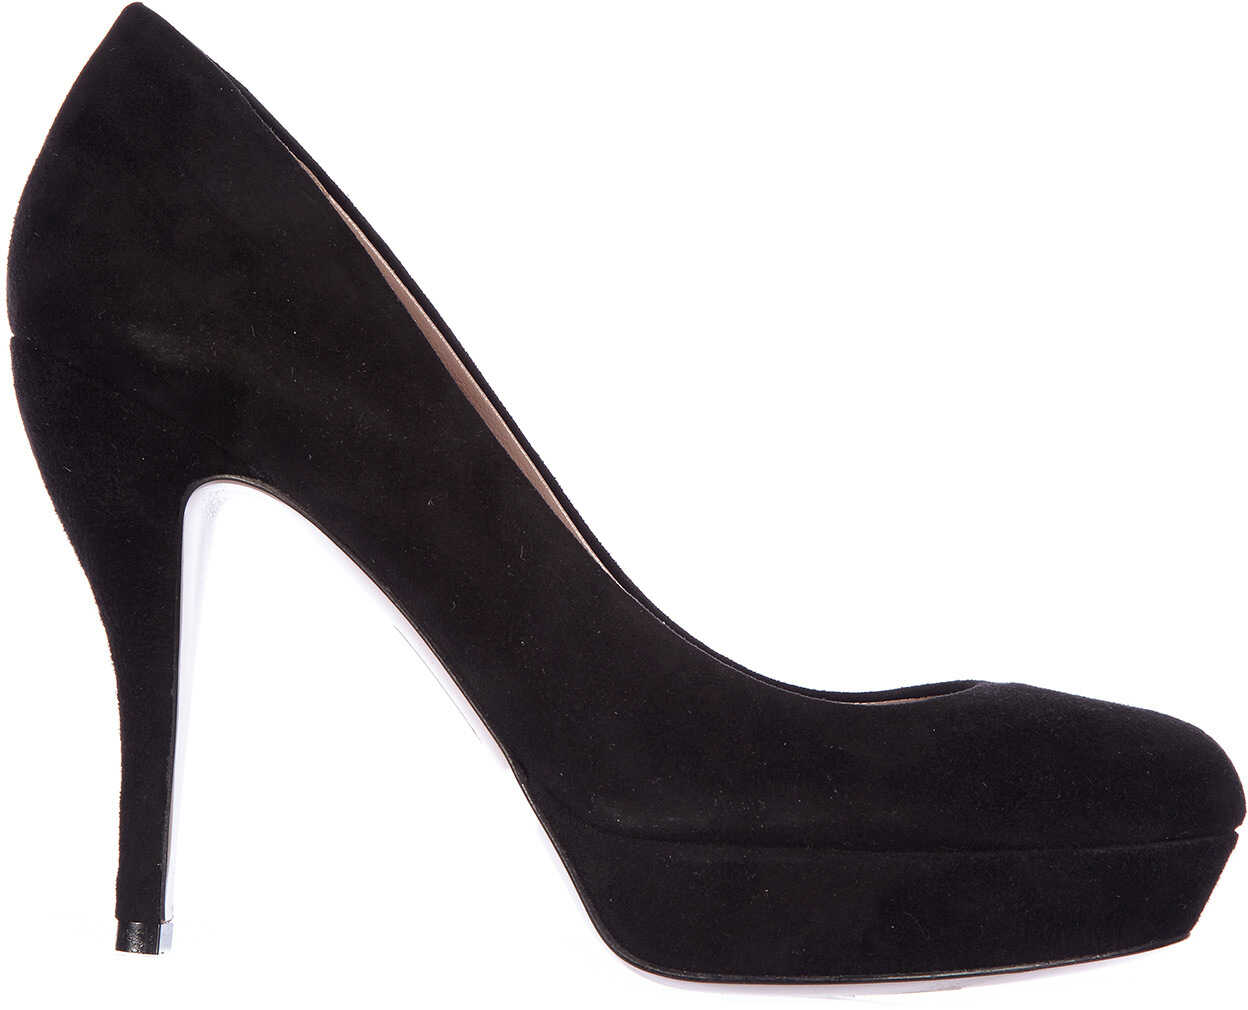 Gucci Pumps High Heel Black